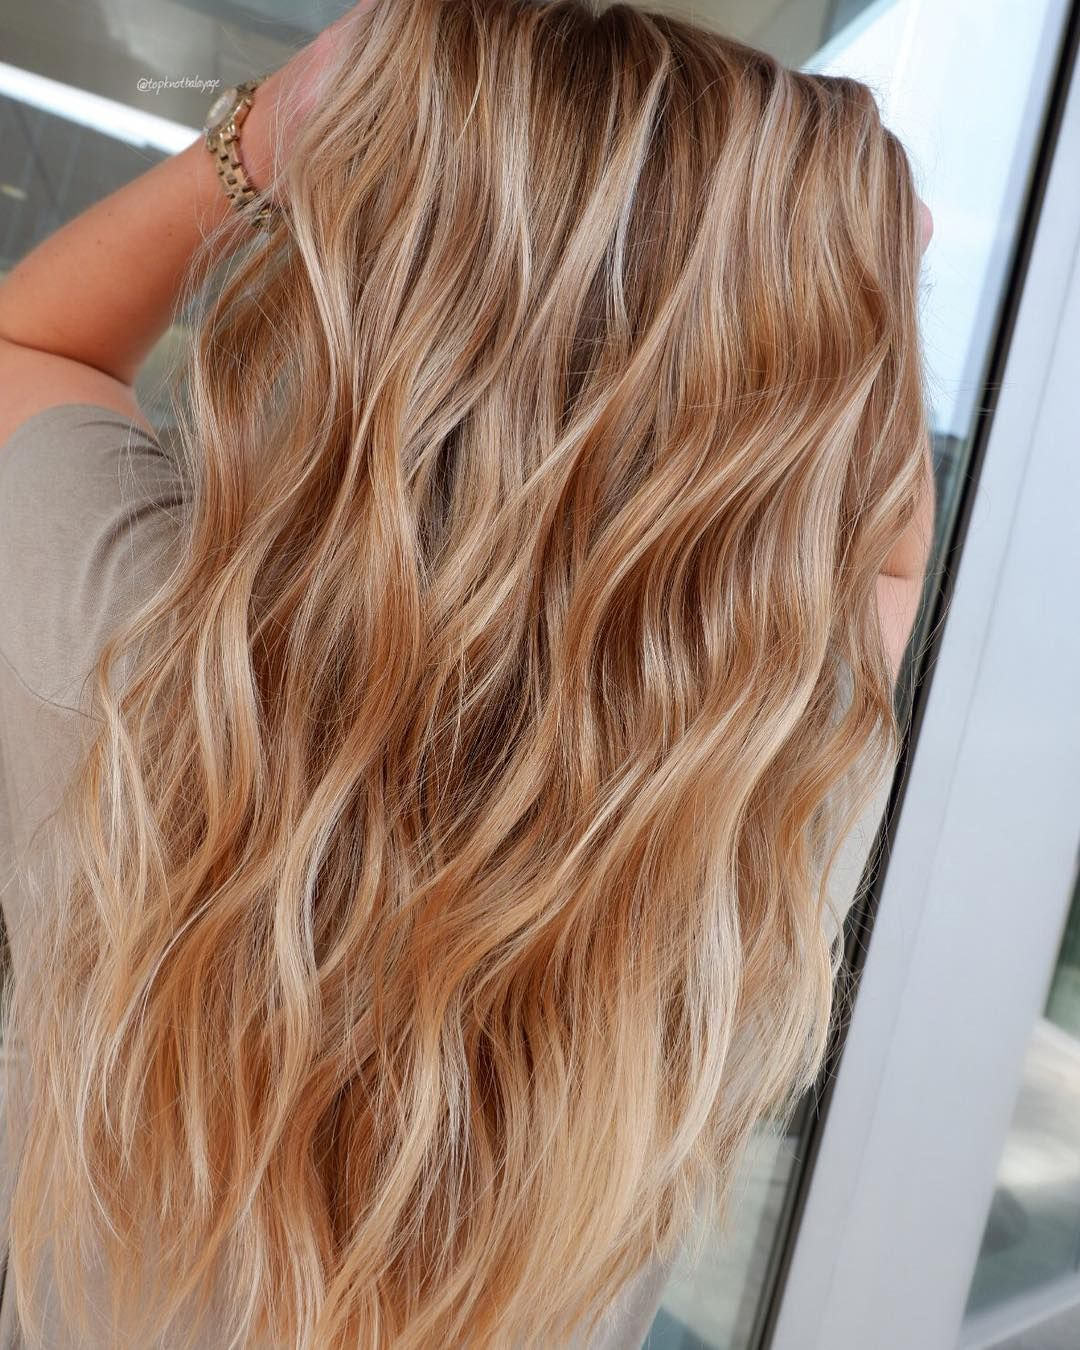 Wellastore | Buy Professional Hair Color, Care & S